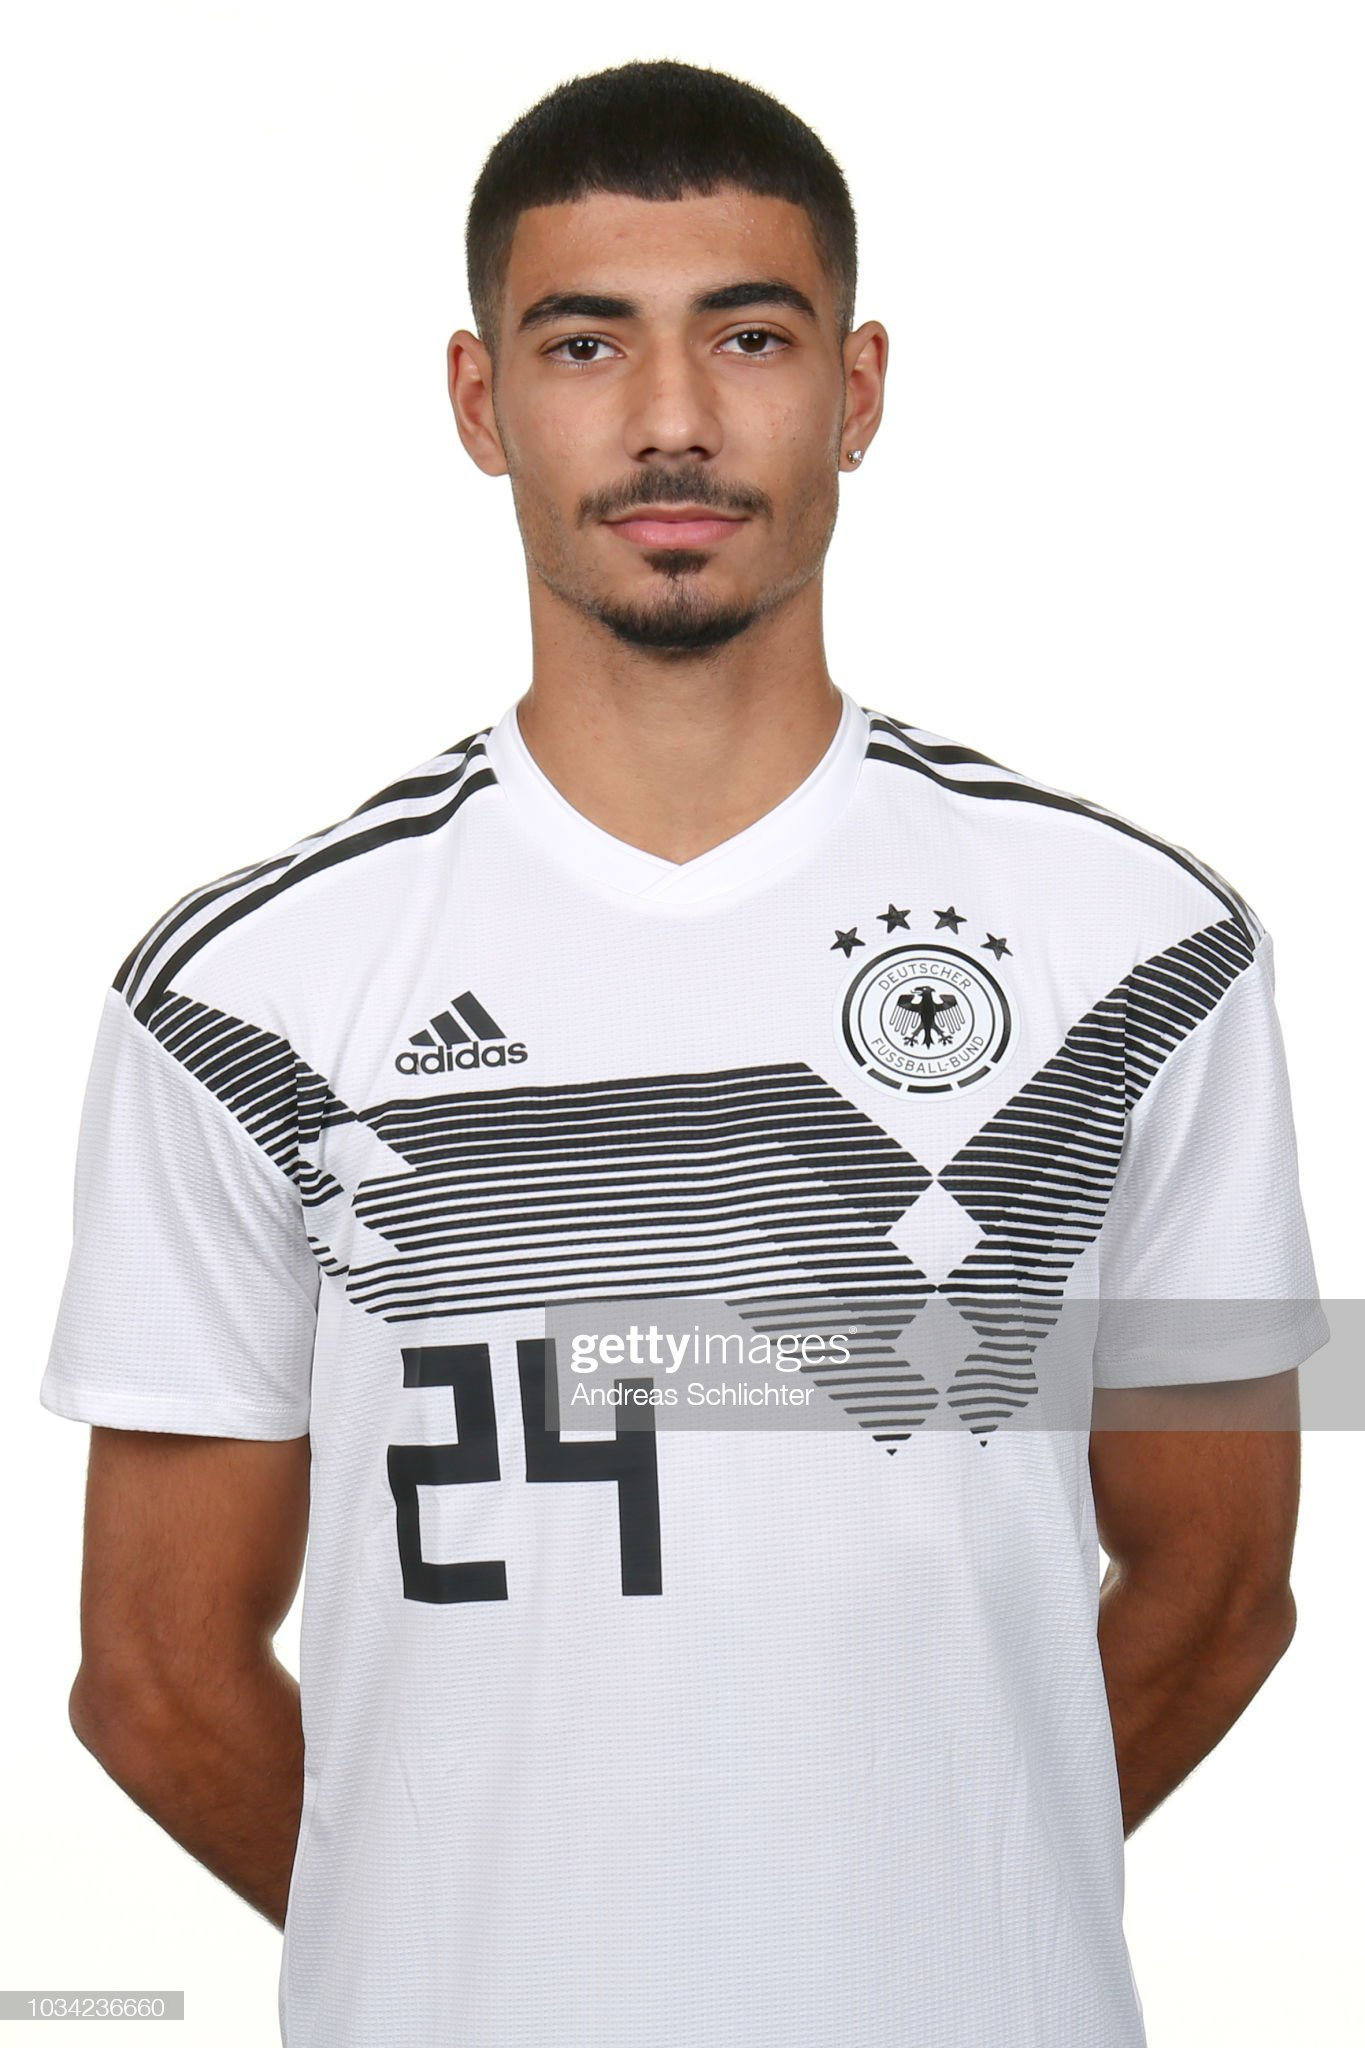 https://media.gettyimages.com/photos/ekin-celebi-poses-during-the-u19-germany-team-presentation-on-5-2018-picture-id1034236660?s=2048x2048